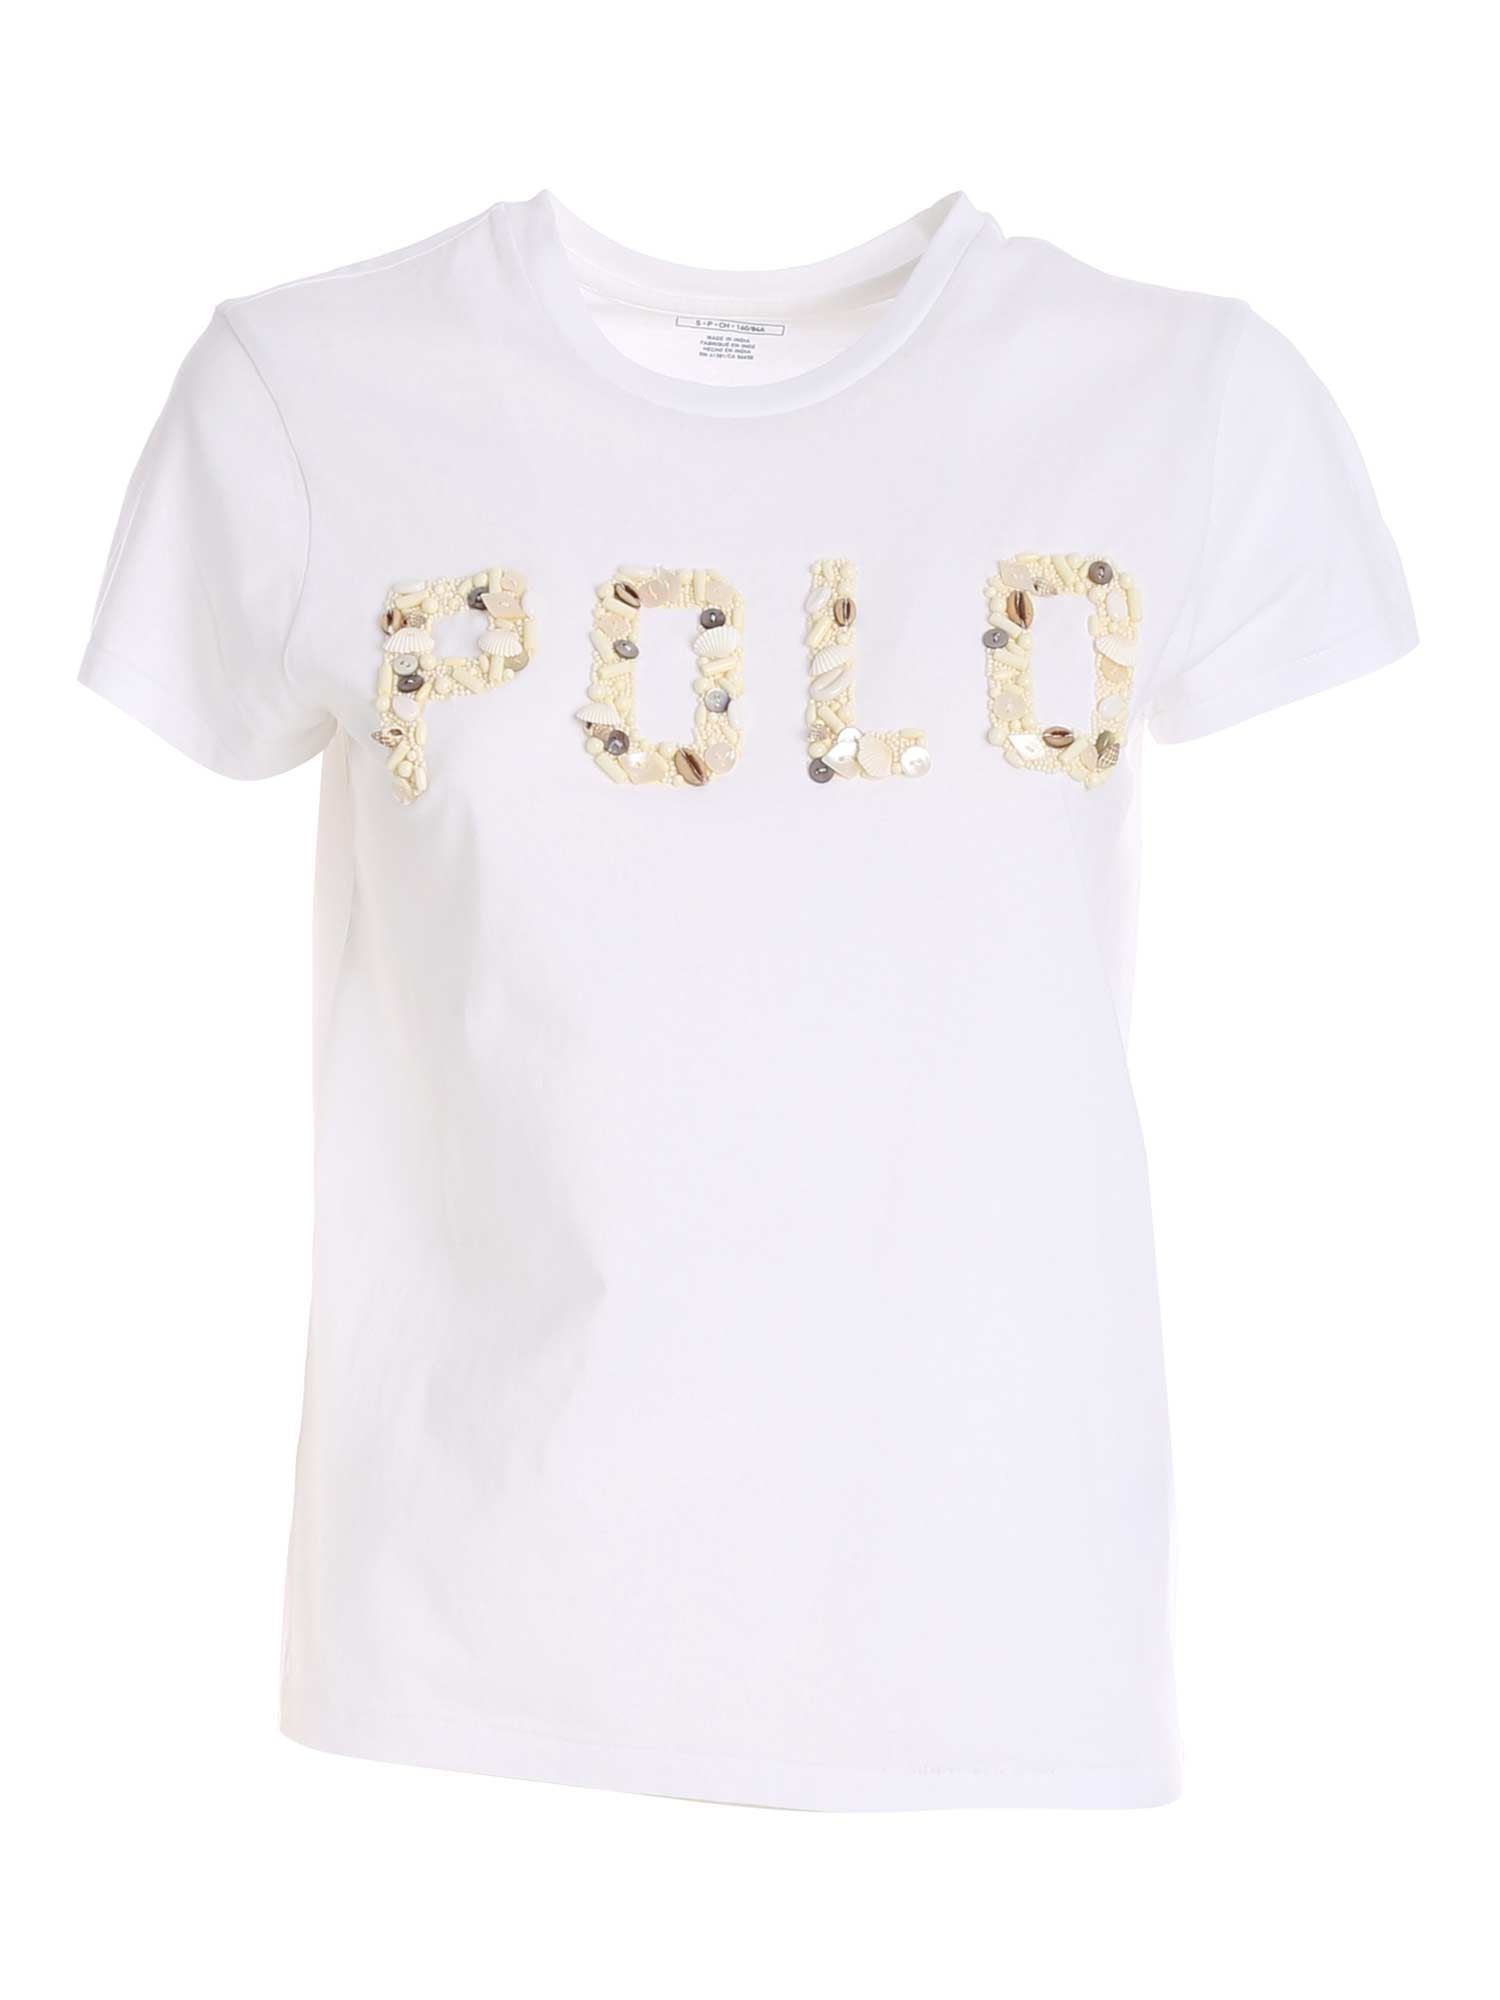 Polo Ralph Lauren POLO RALPH LAUREN DECORATED LOGO T-SHIRT IN WHITE